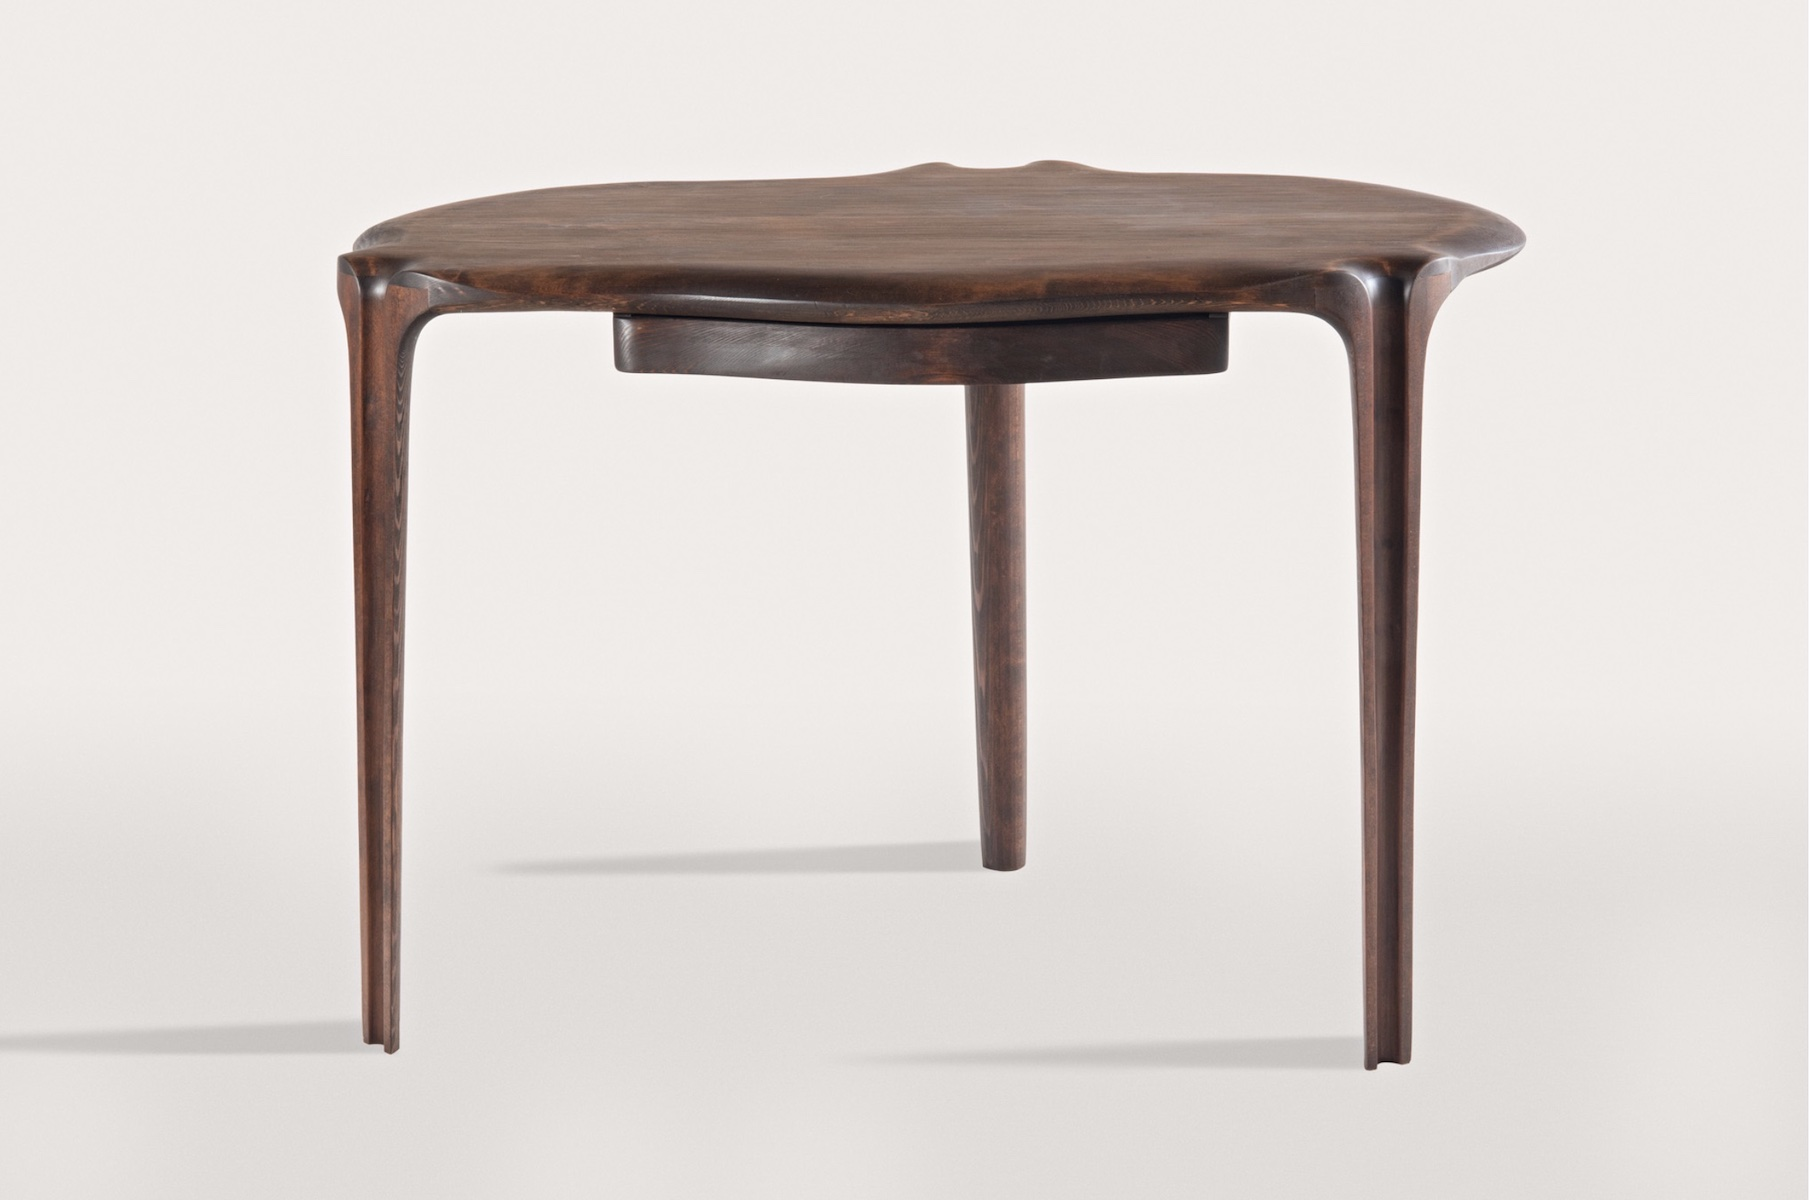 back view of the Writing Desk by artist Christopher Kurtz